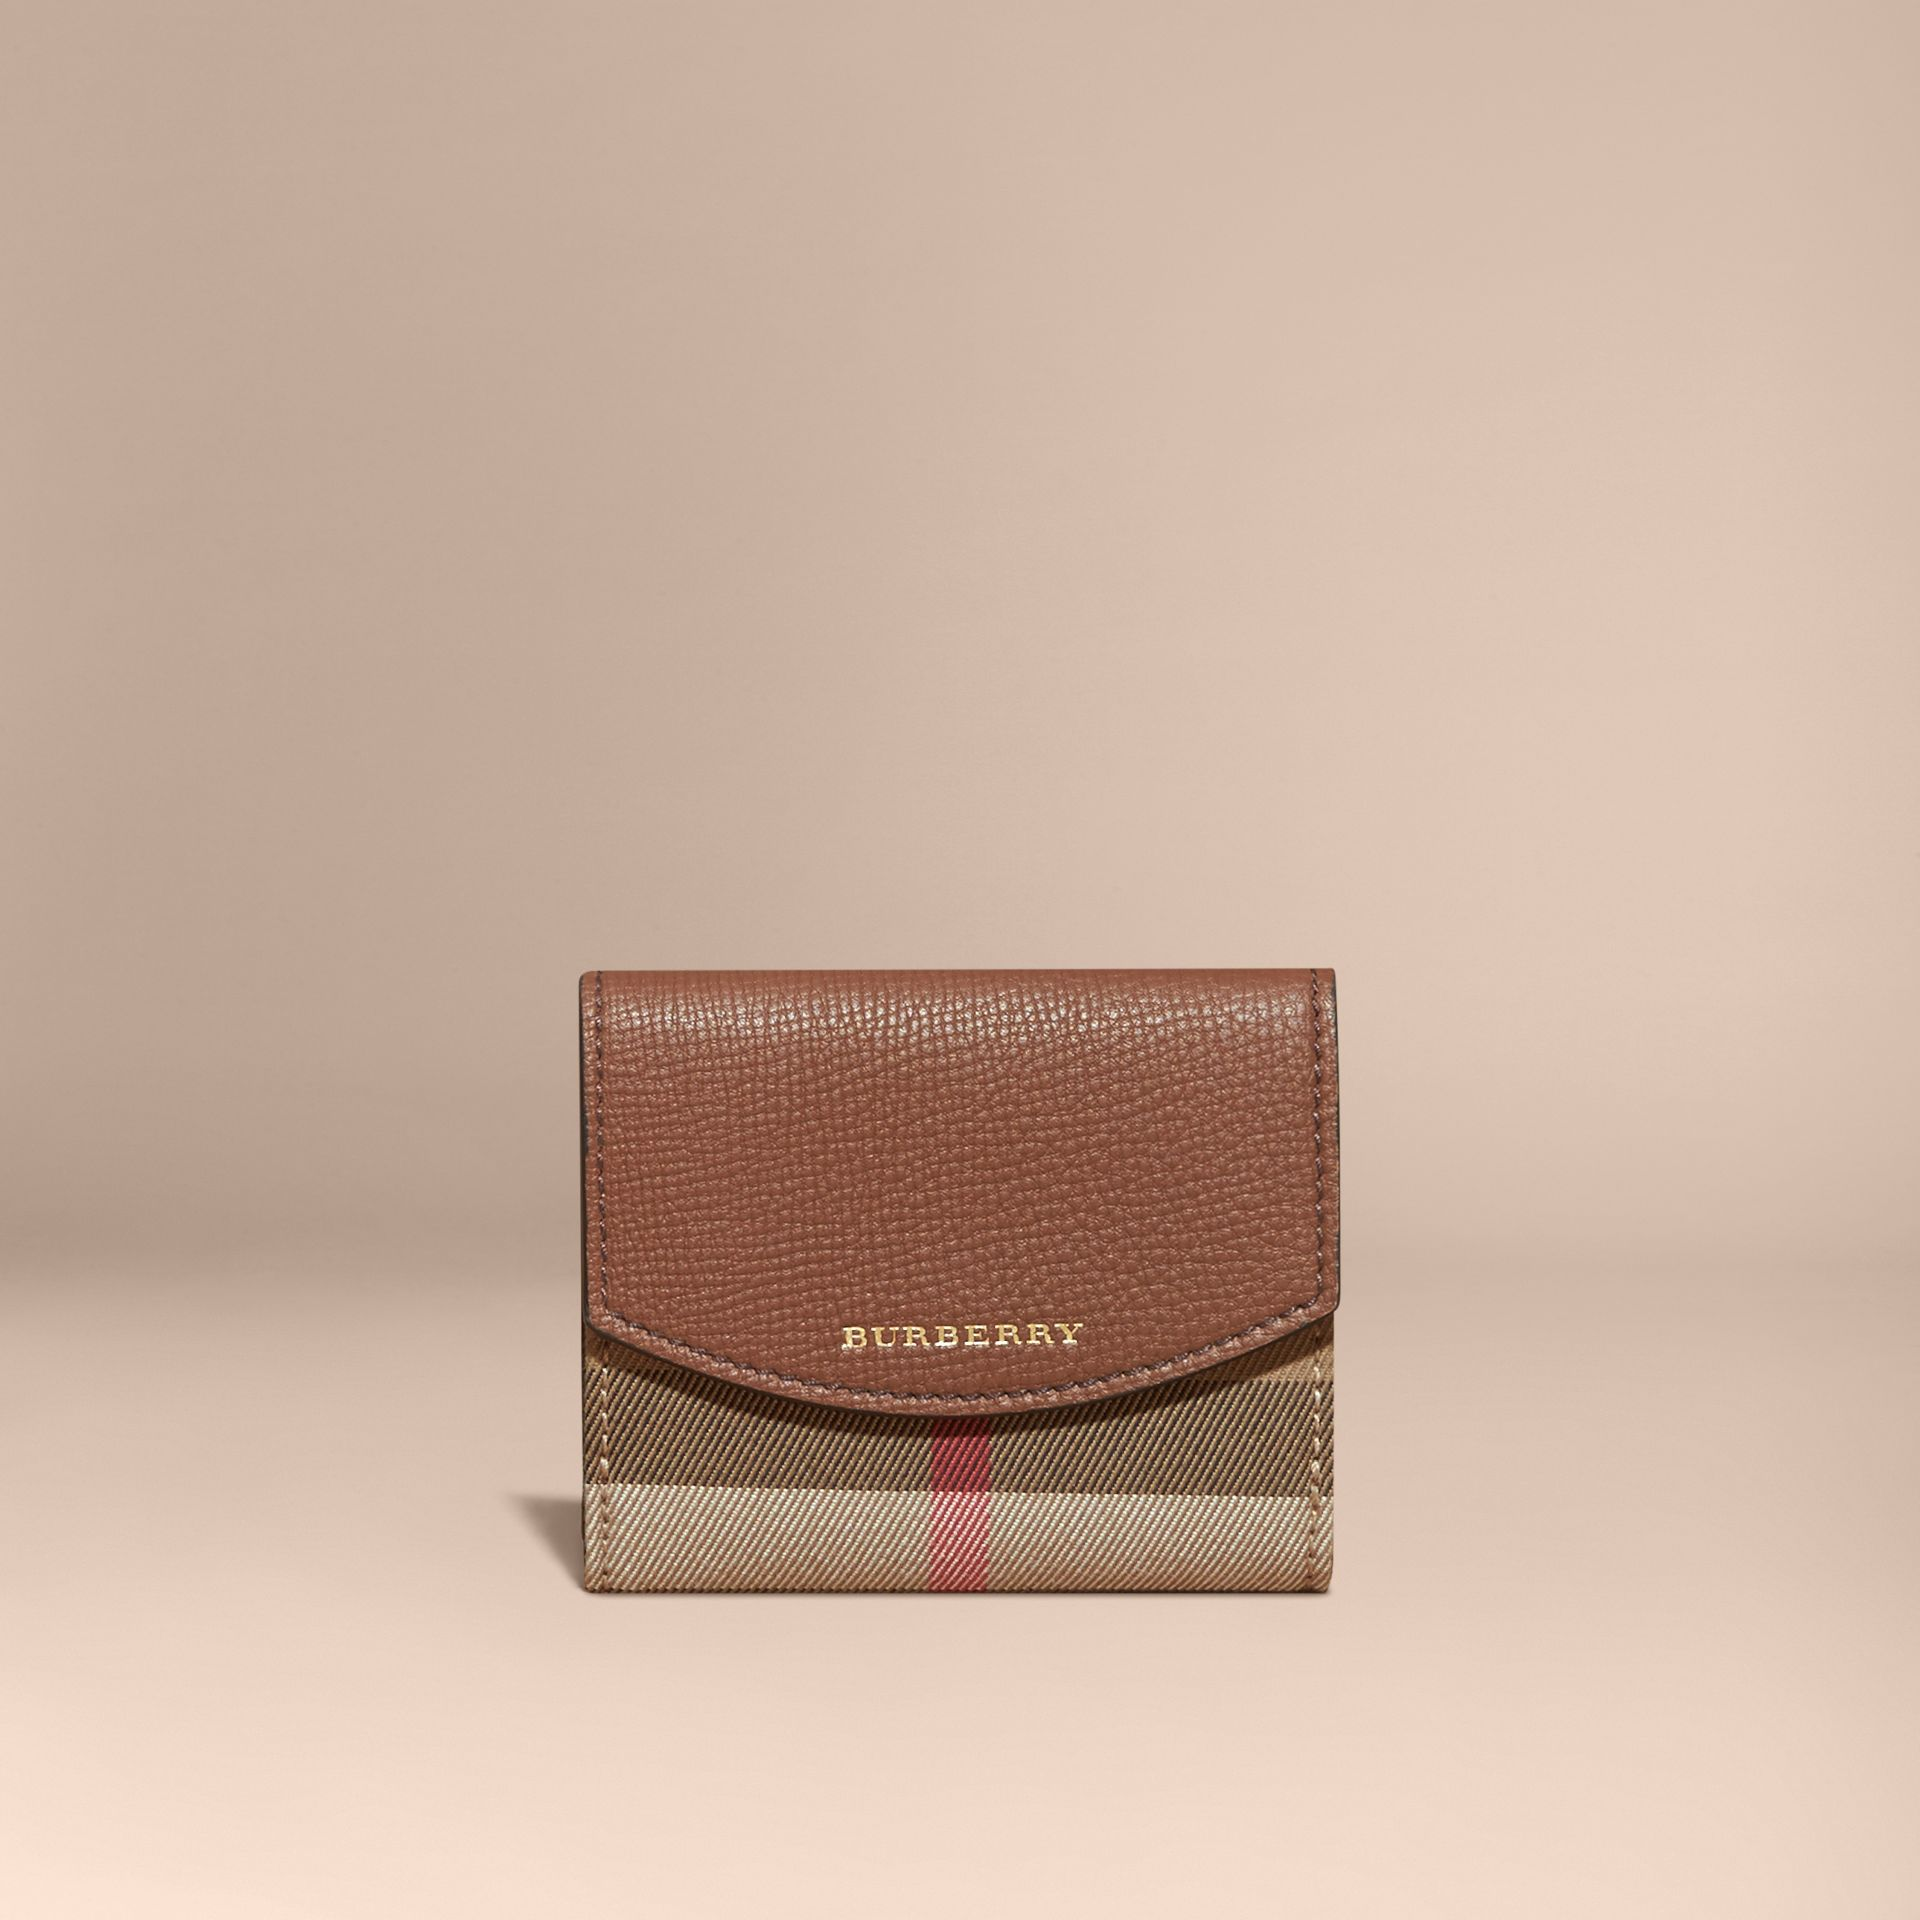 House Check and Leather Wallet in Tan - Women | Burberry - gallery image 7